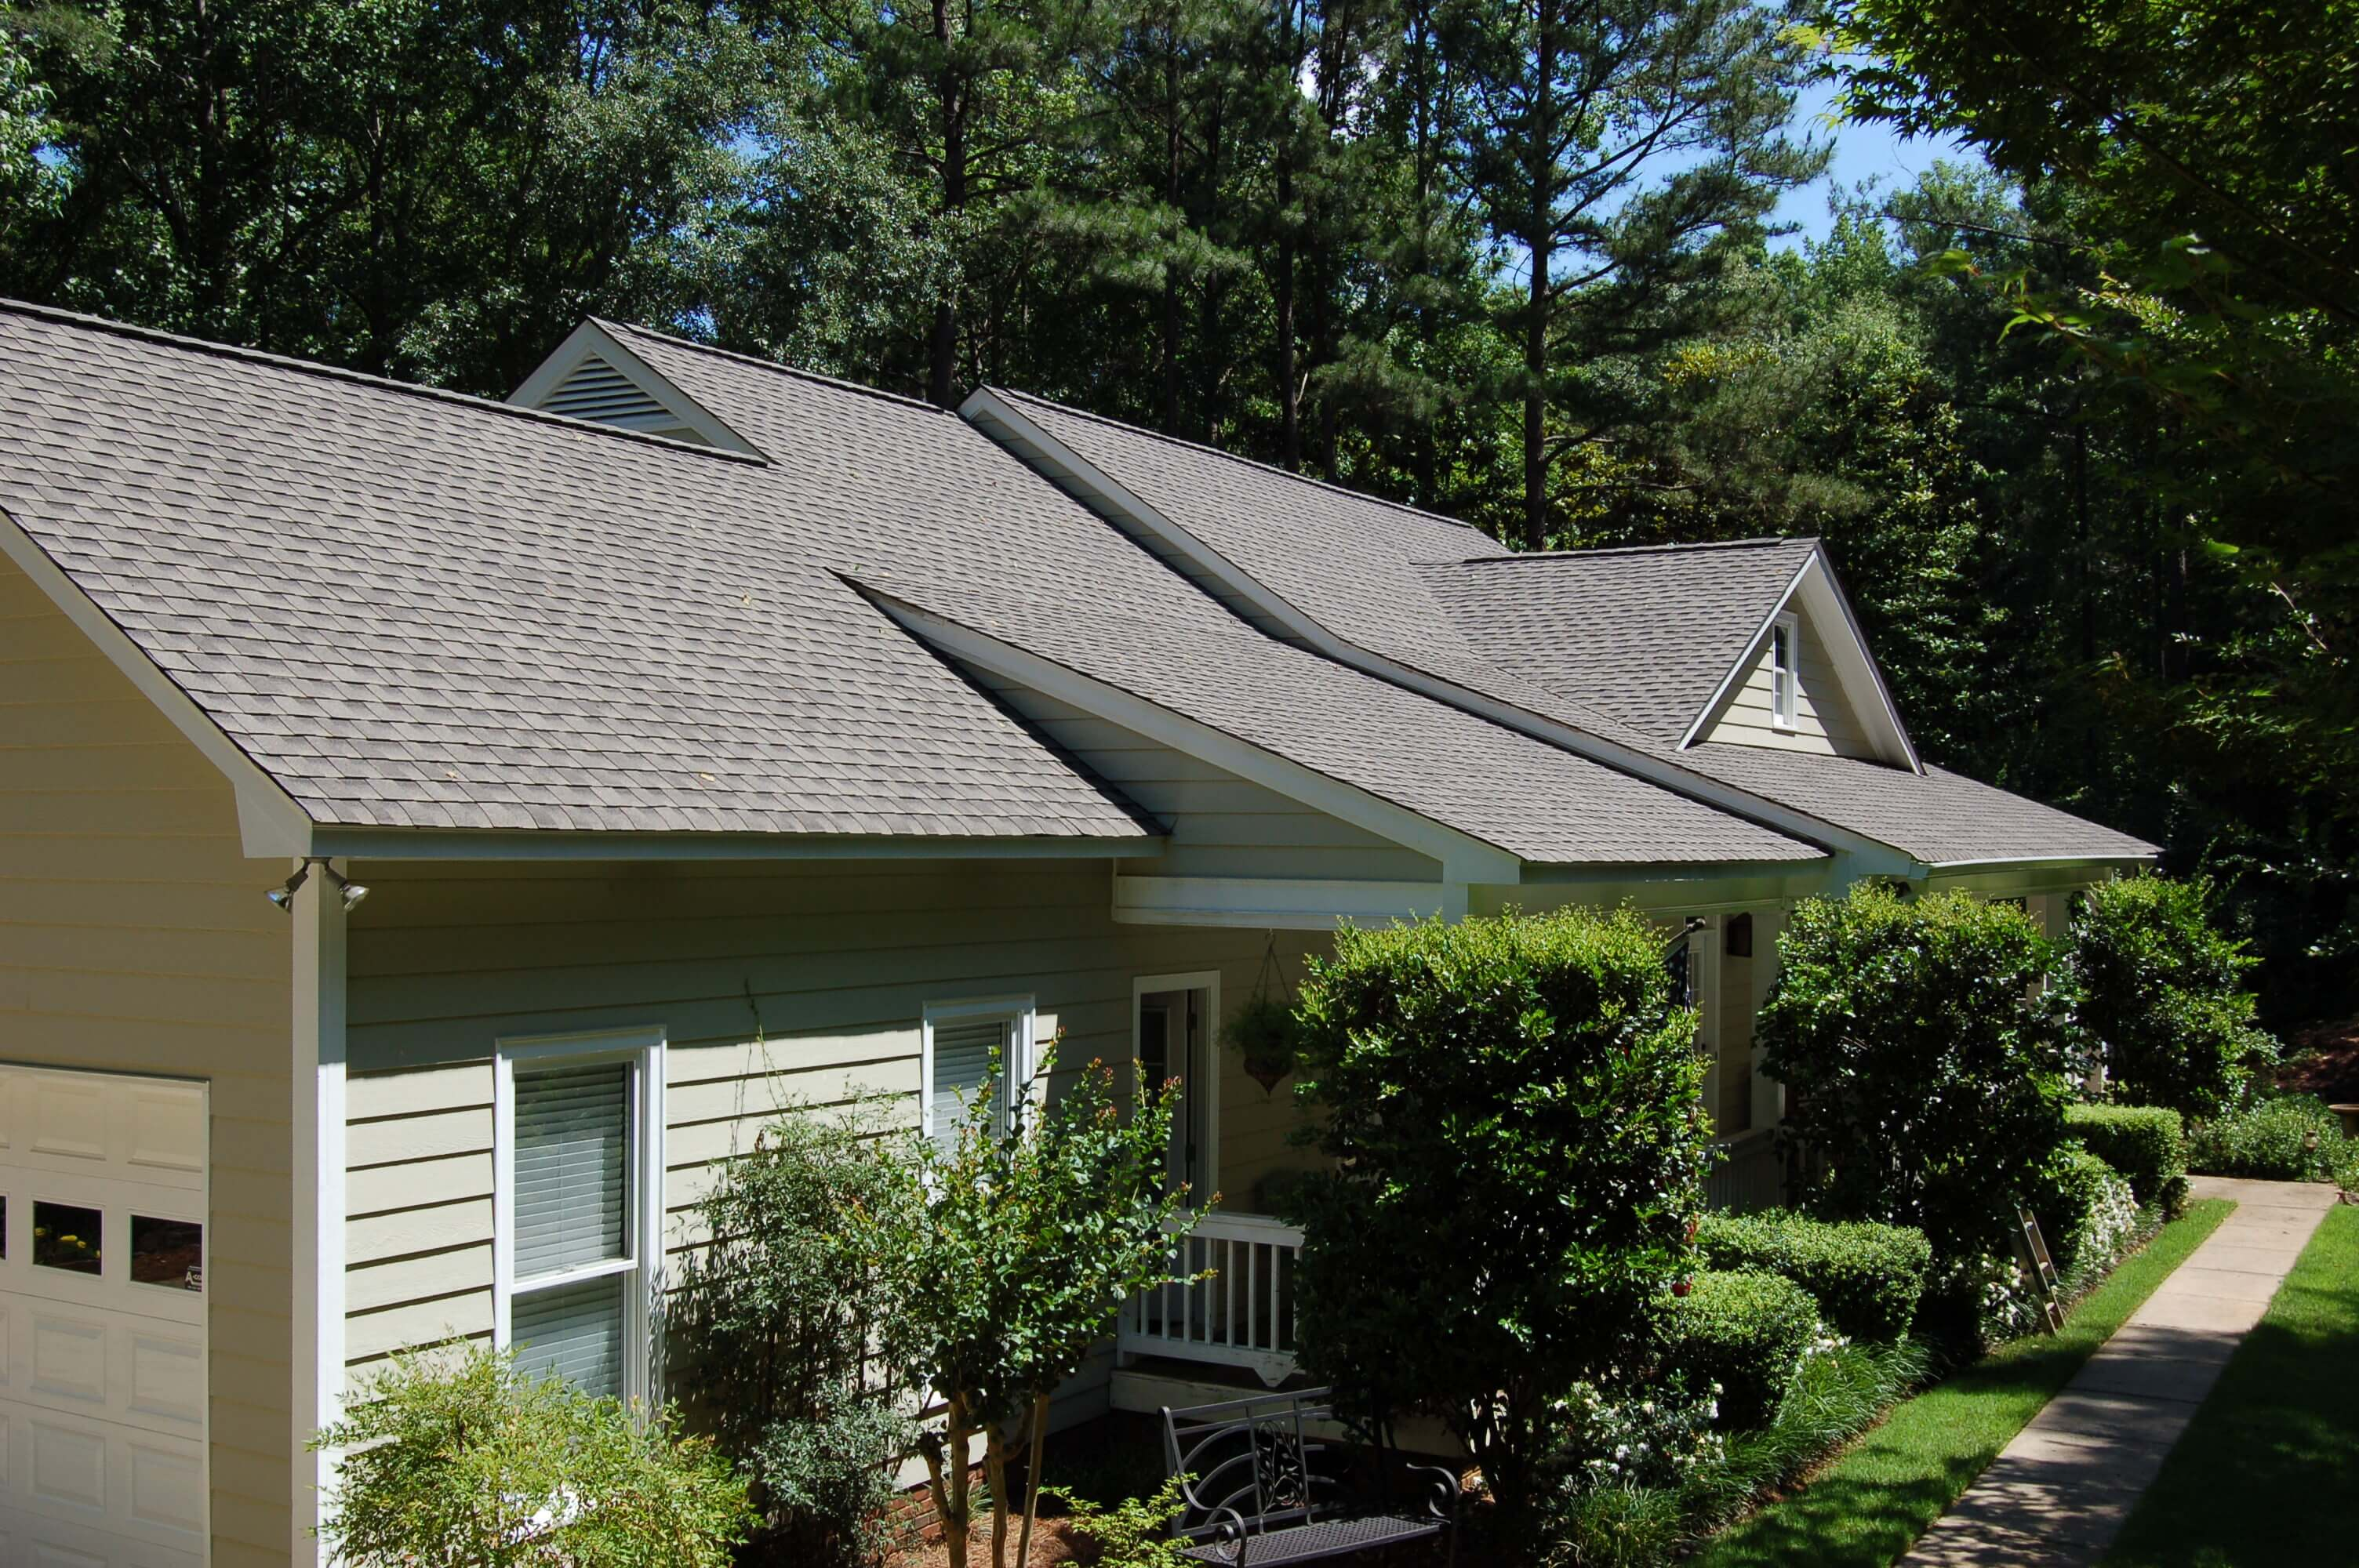 GAF Timberline Ultra Shingle